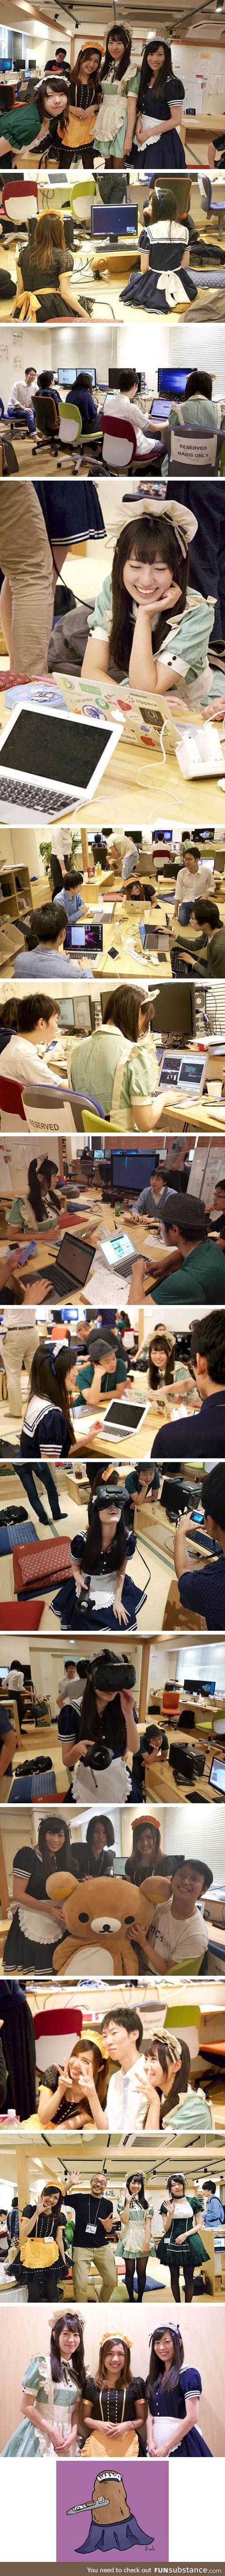 School in tokyo allows students to study with cute maids as they learn programming skills